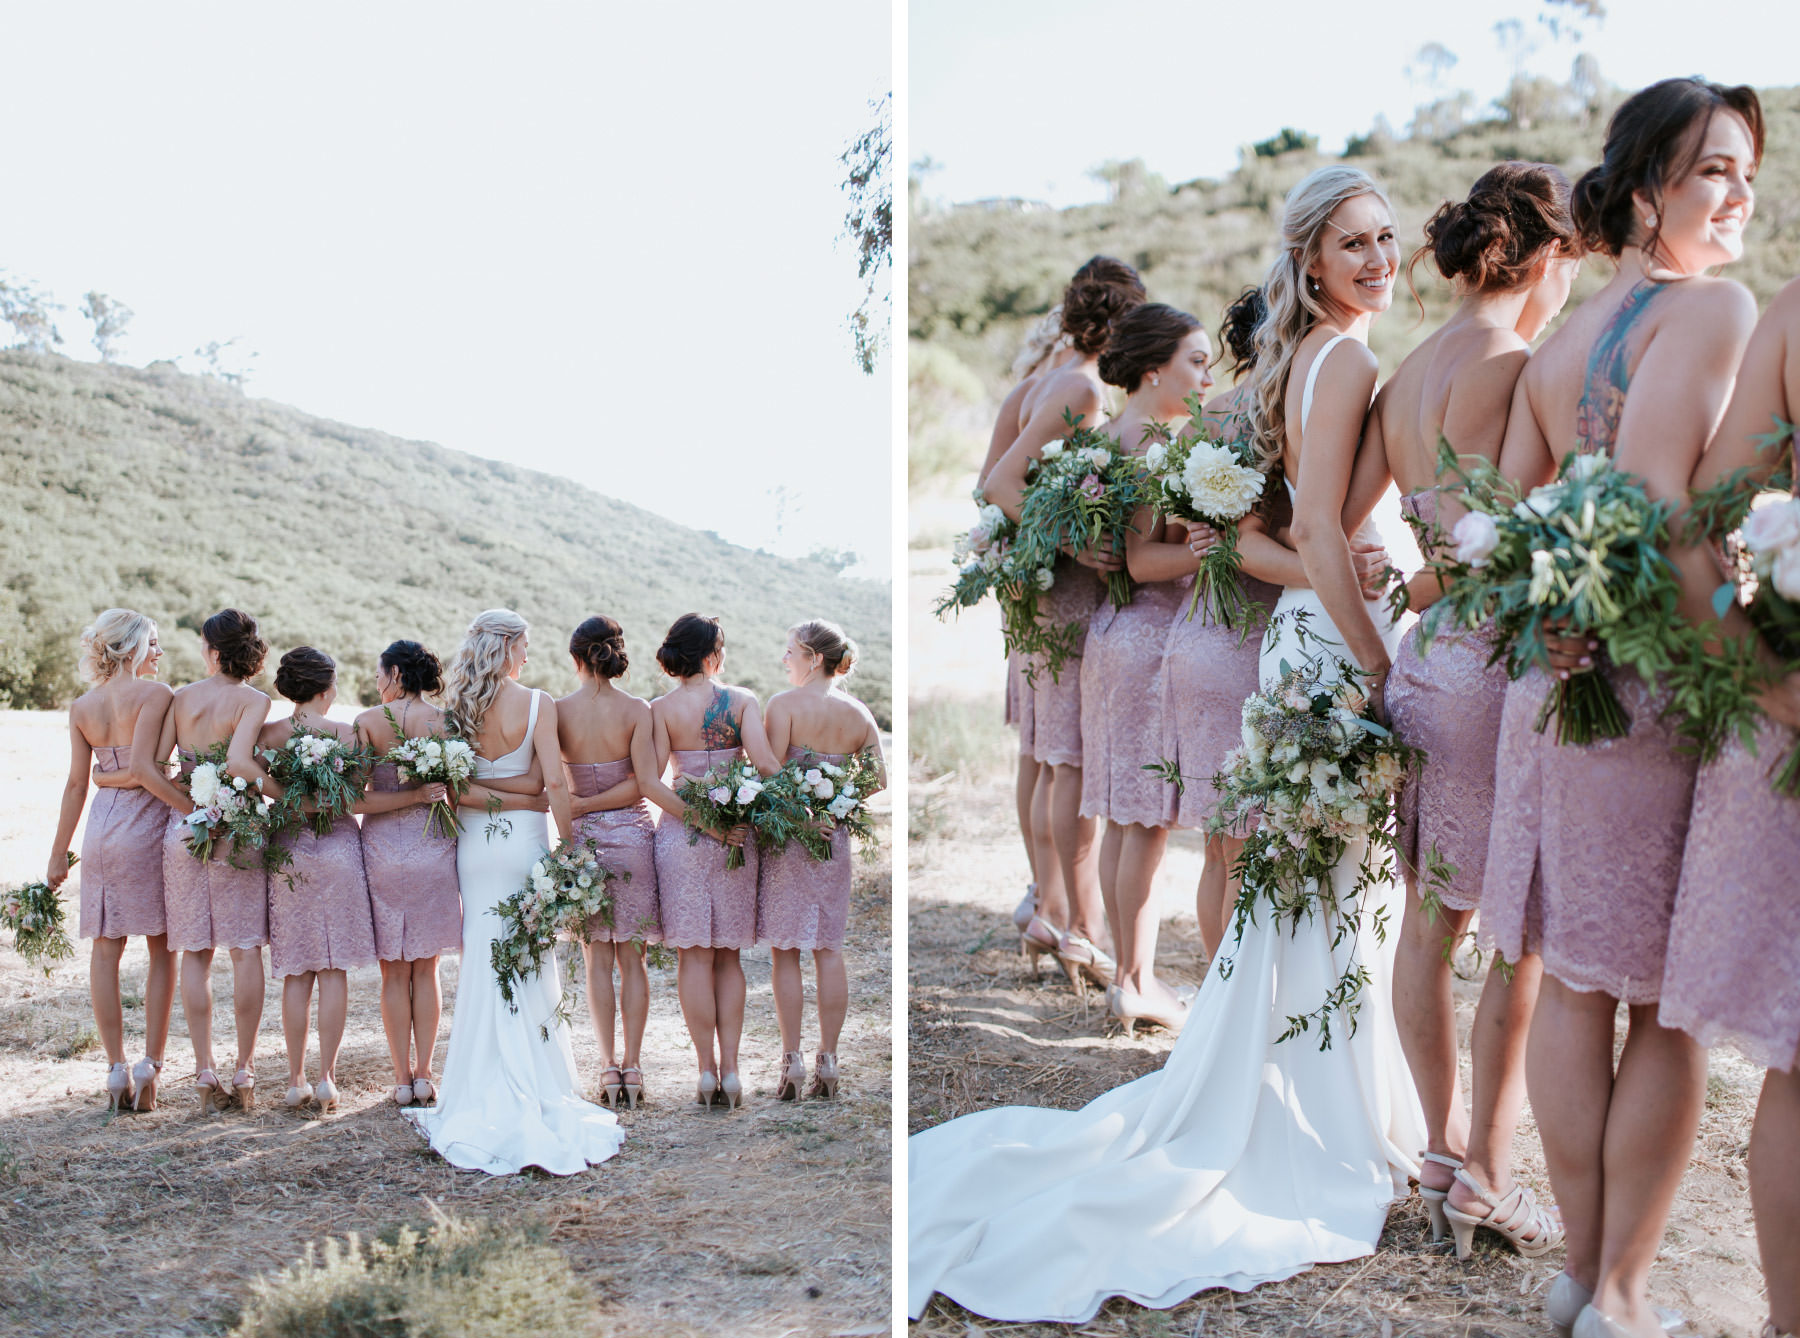 Modern bride poses with bridesmaids in metallic pink champagne dresses